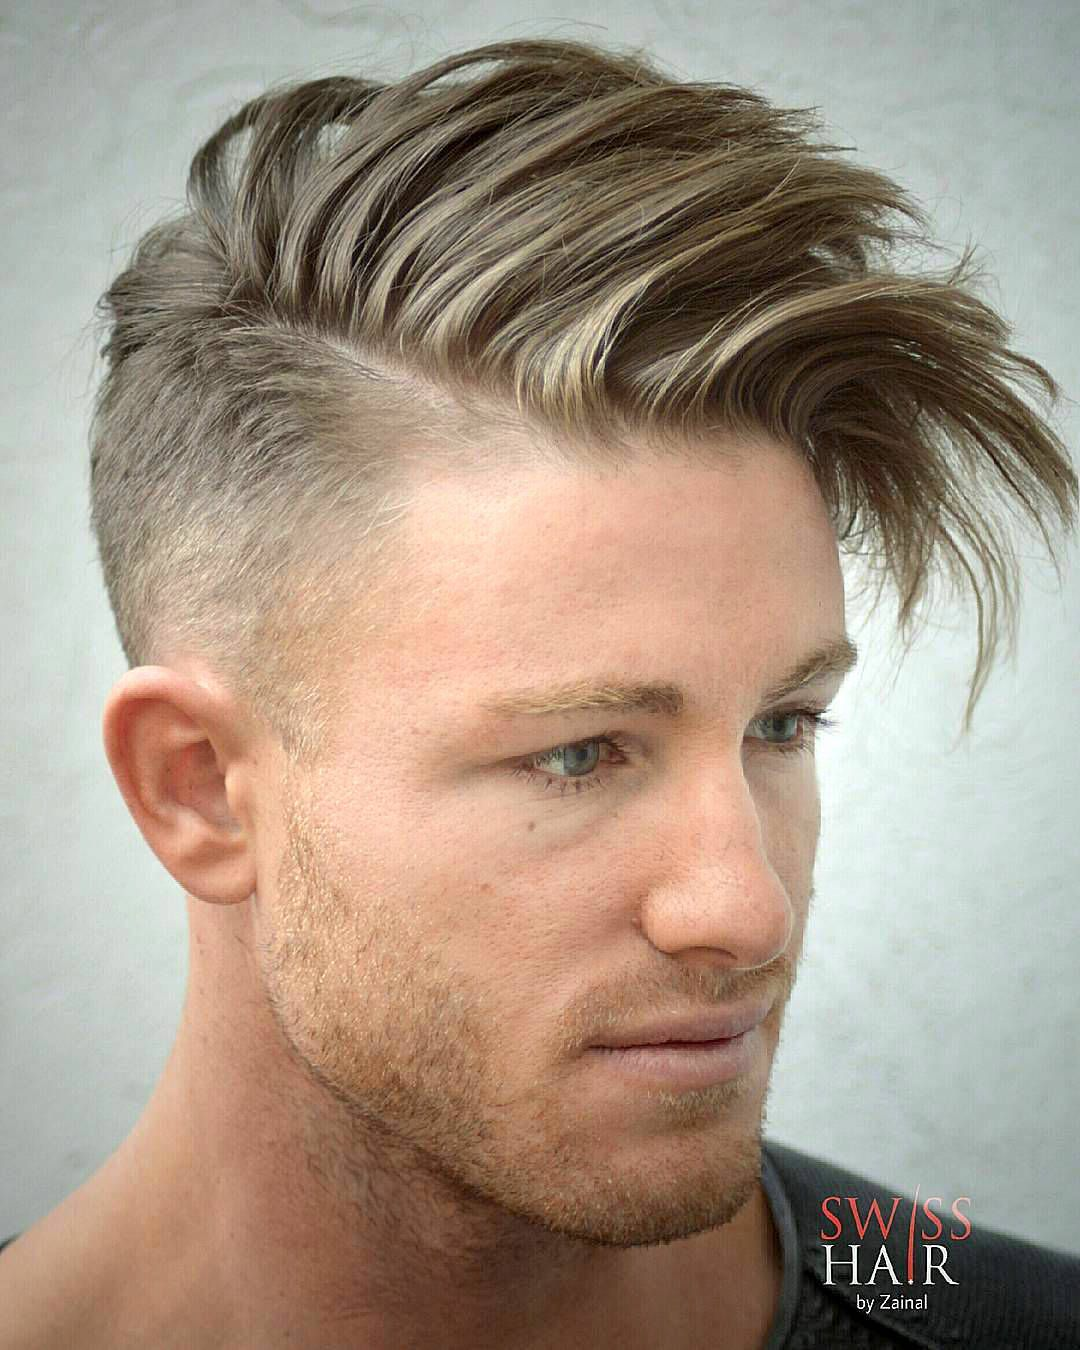 20 Long Hairstyles For Men To Get In 2018 Haircut Pinterest